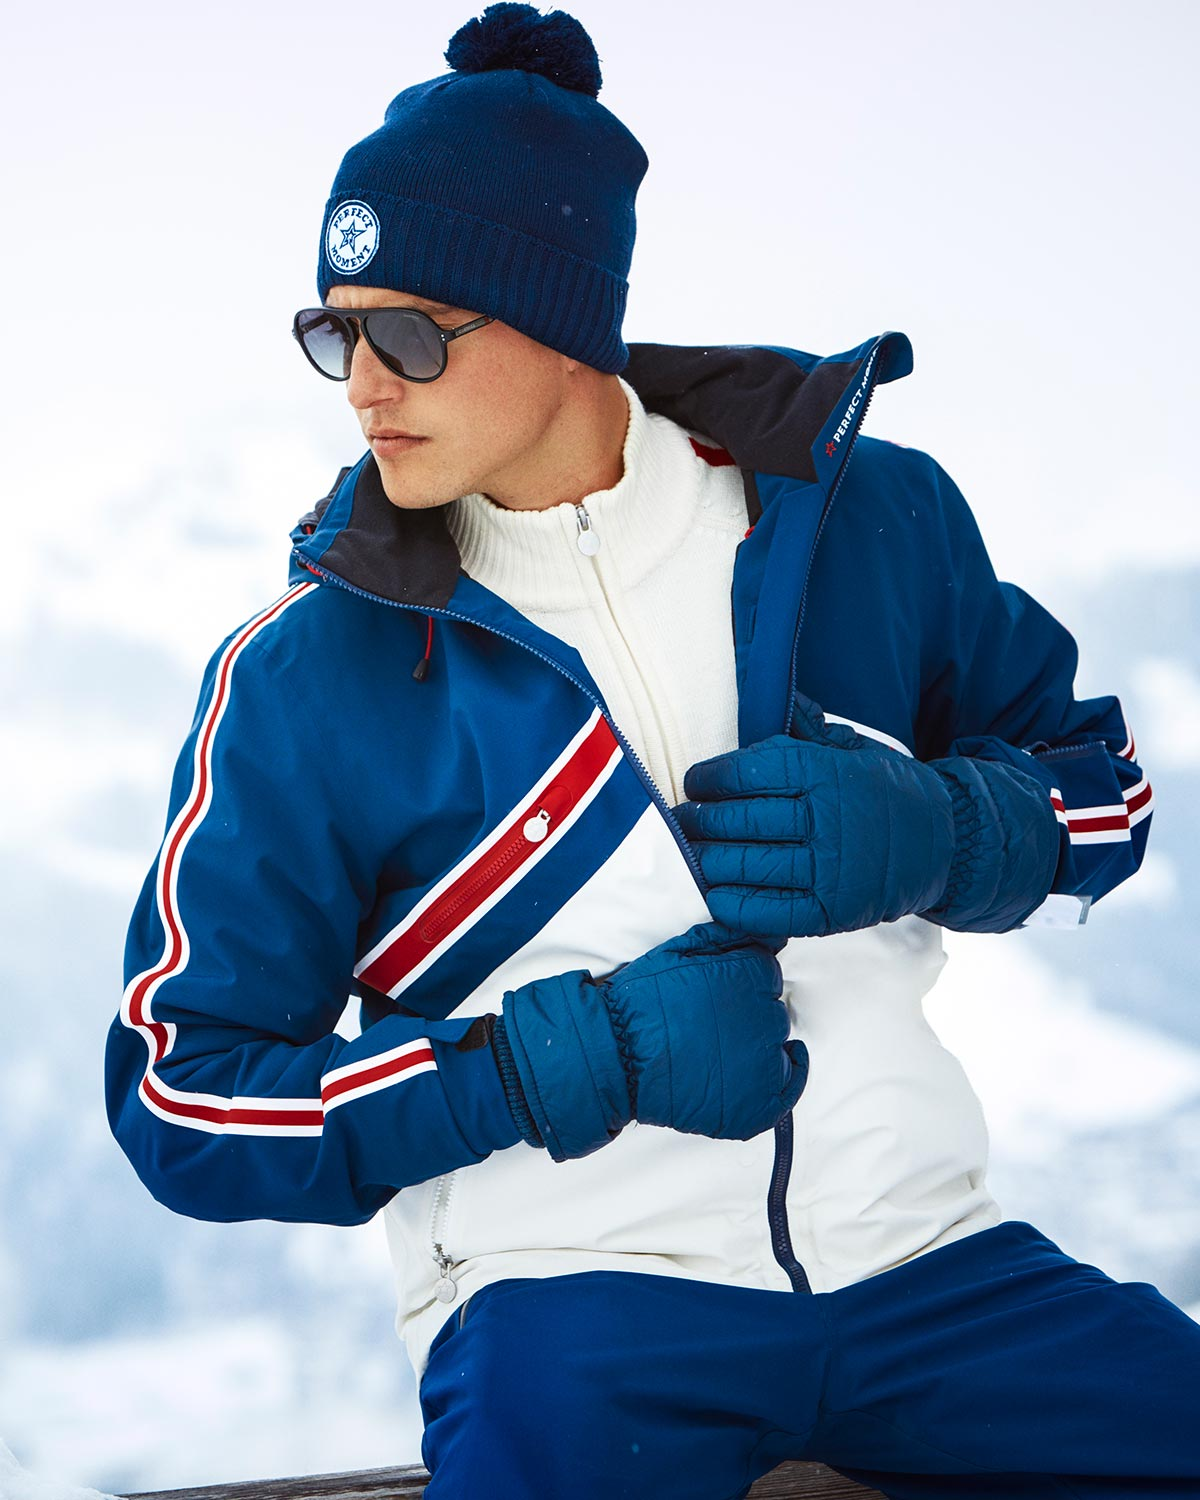 Men's Chevron Colour Block Ski Jacket Sale